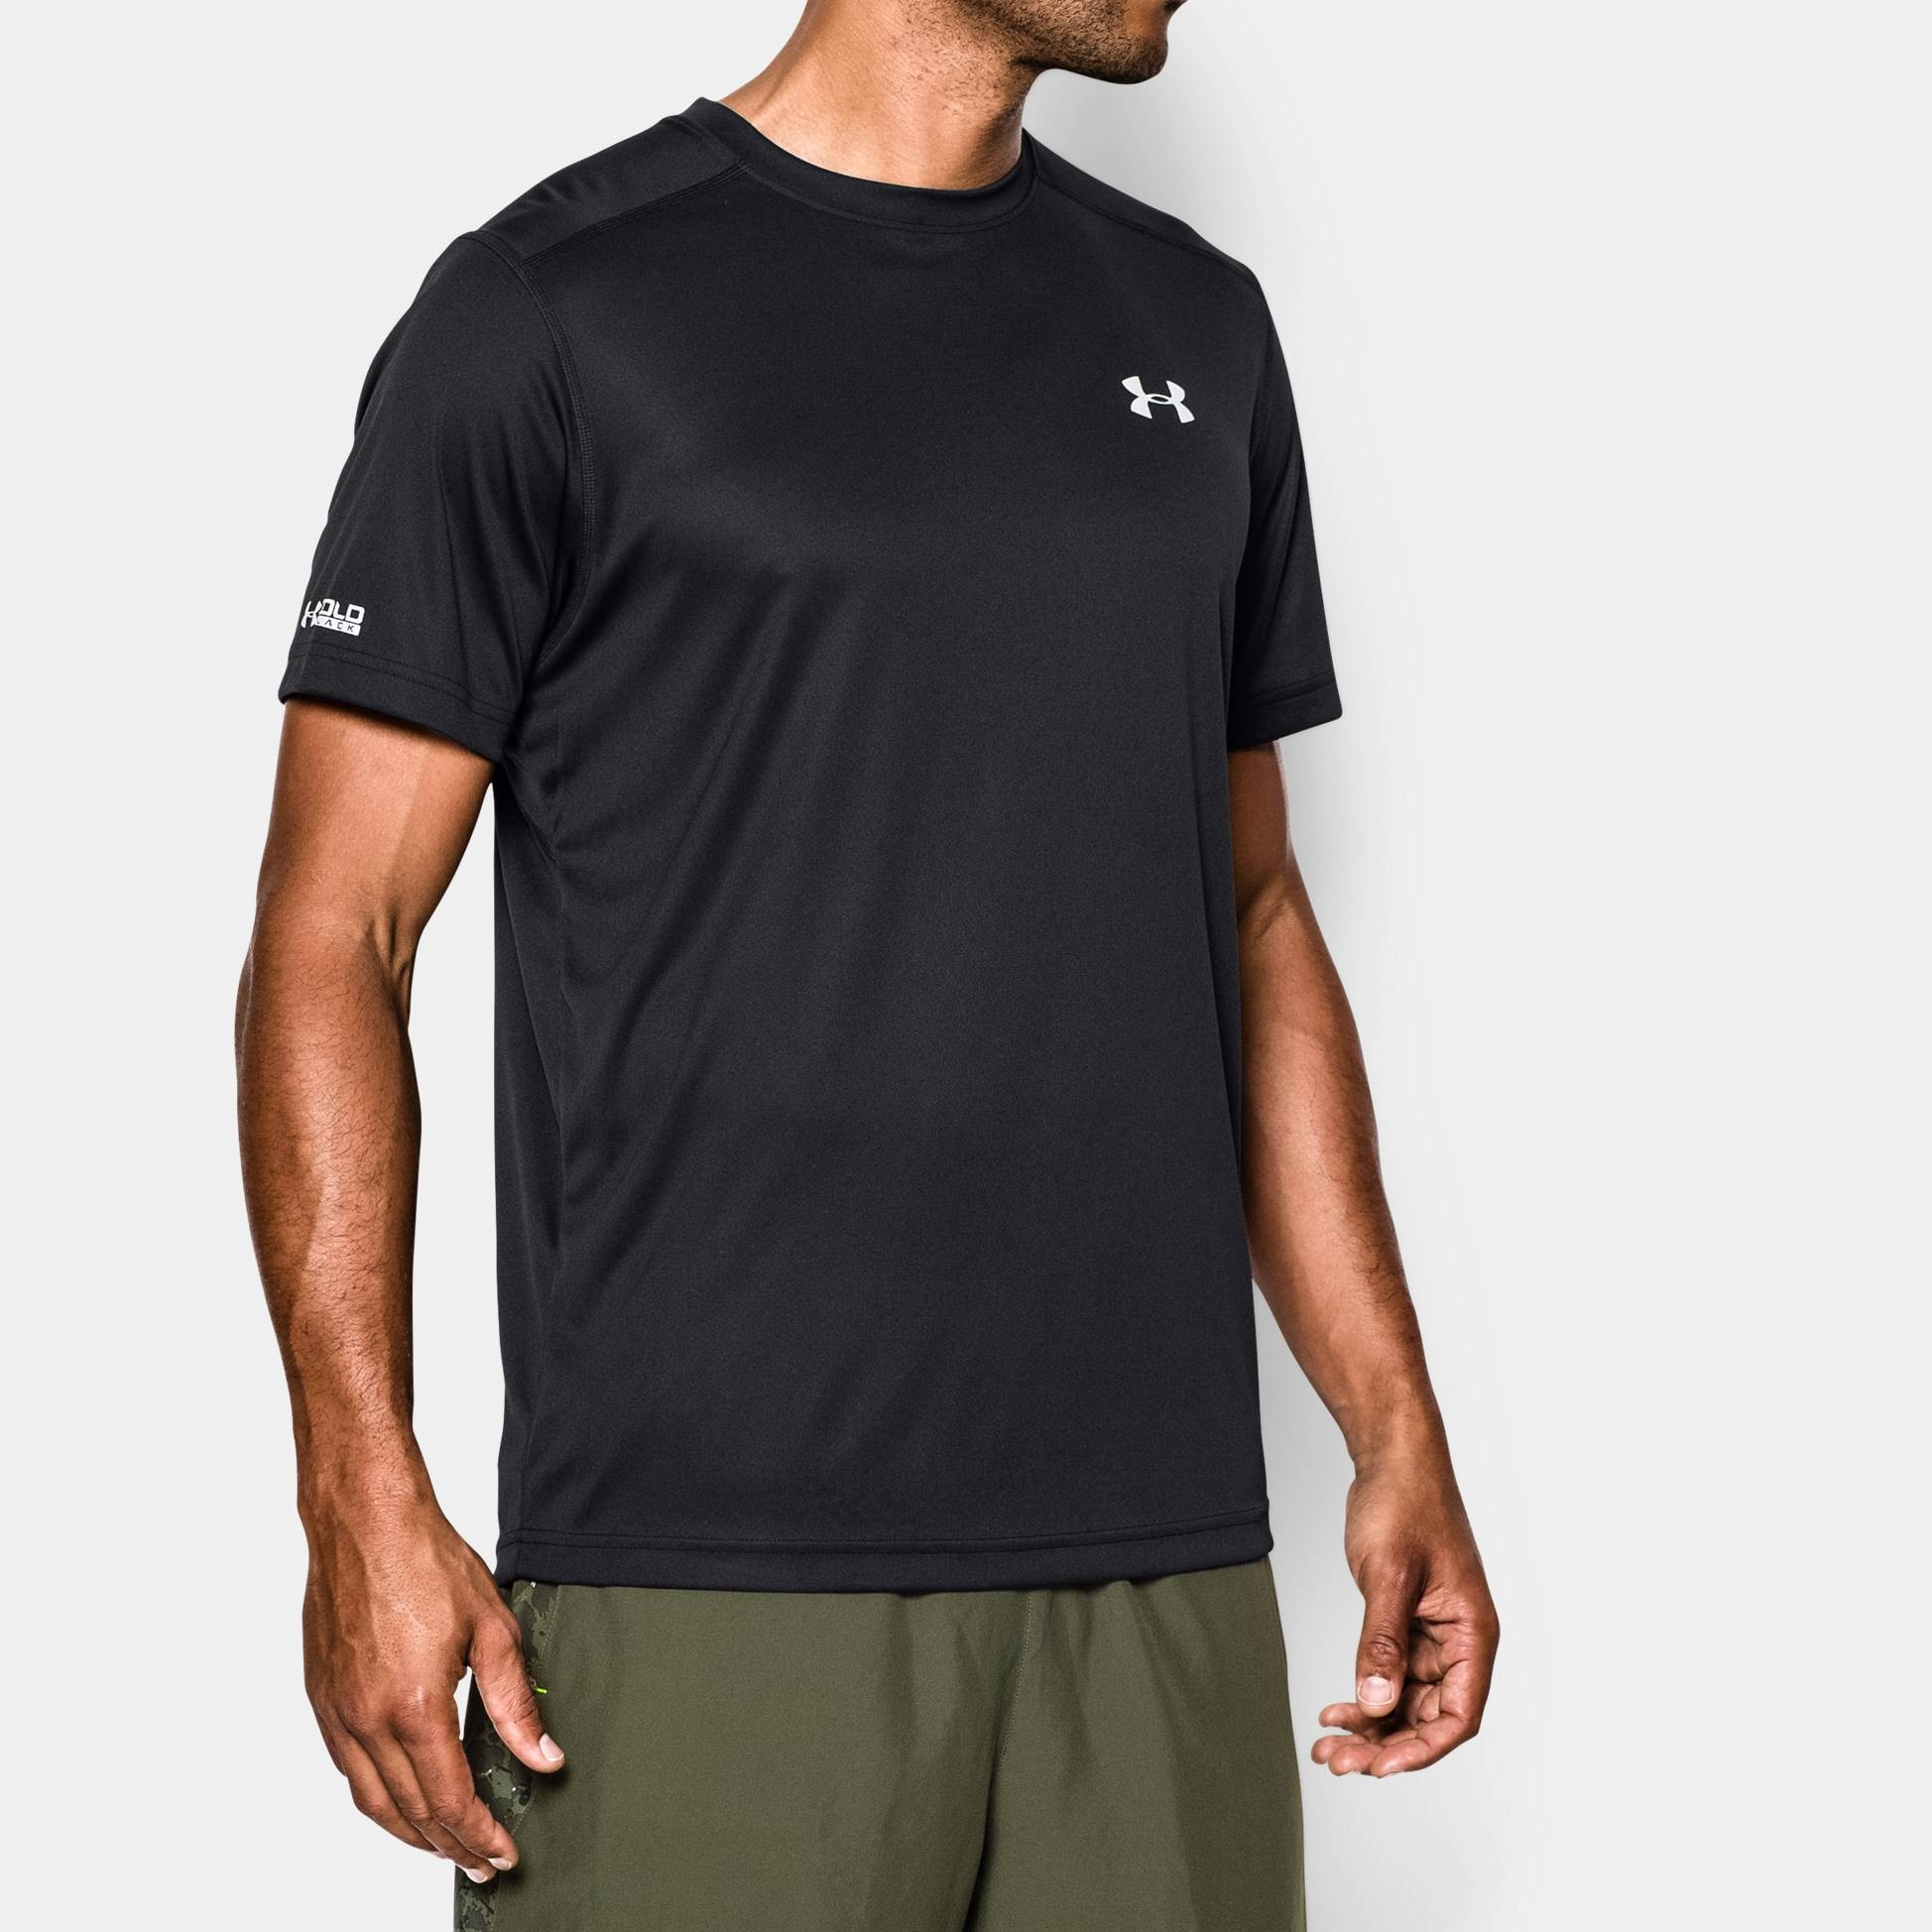 Clothing under armour cold black run t shirt fitness for Under armour i will shirt